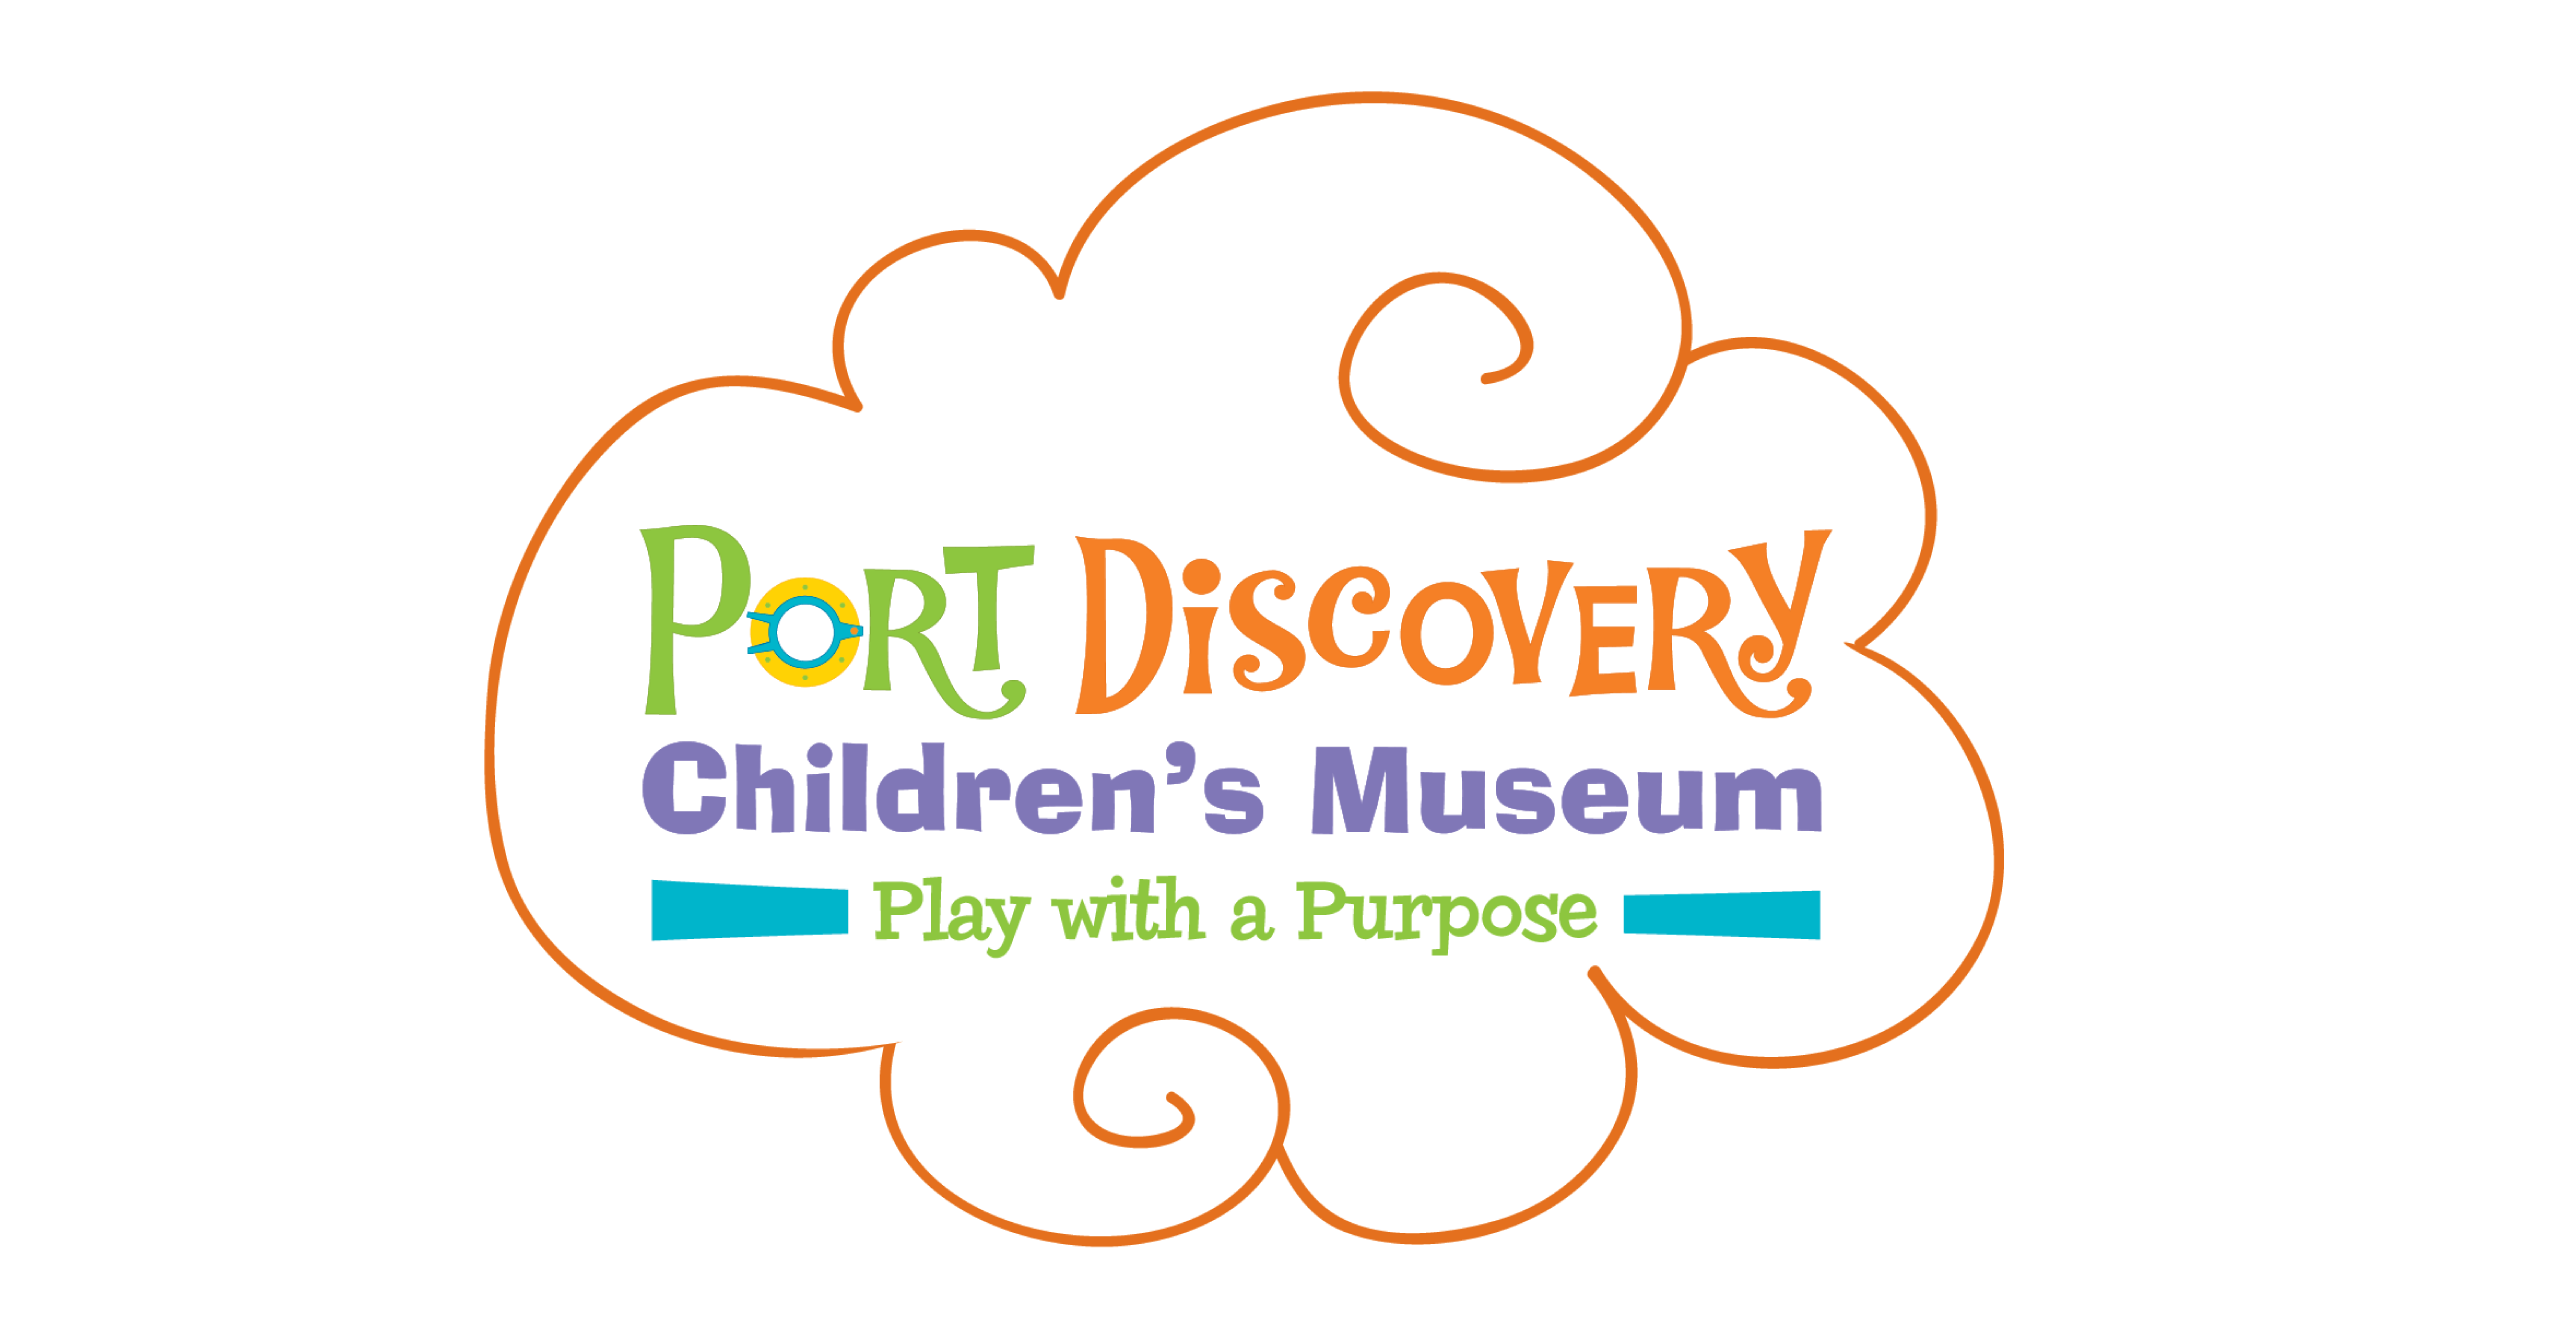 Port Discovery